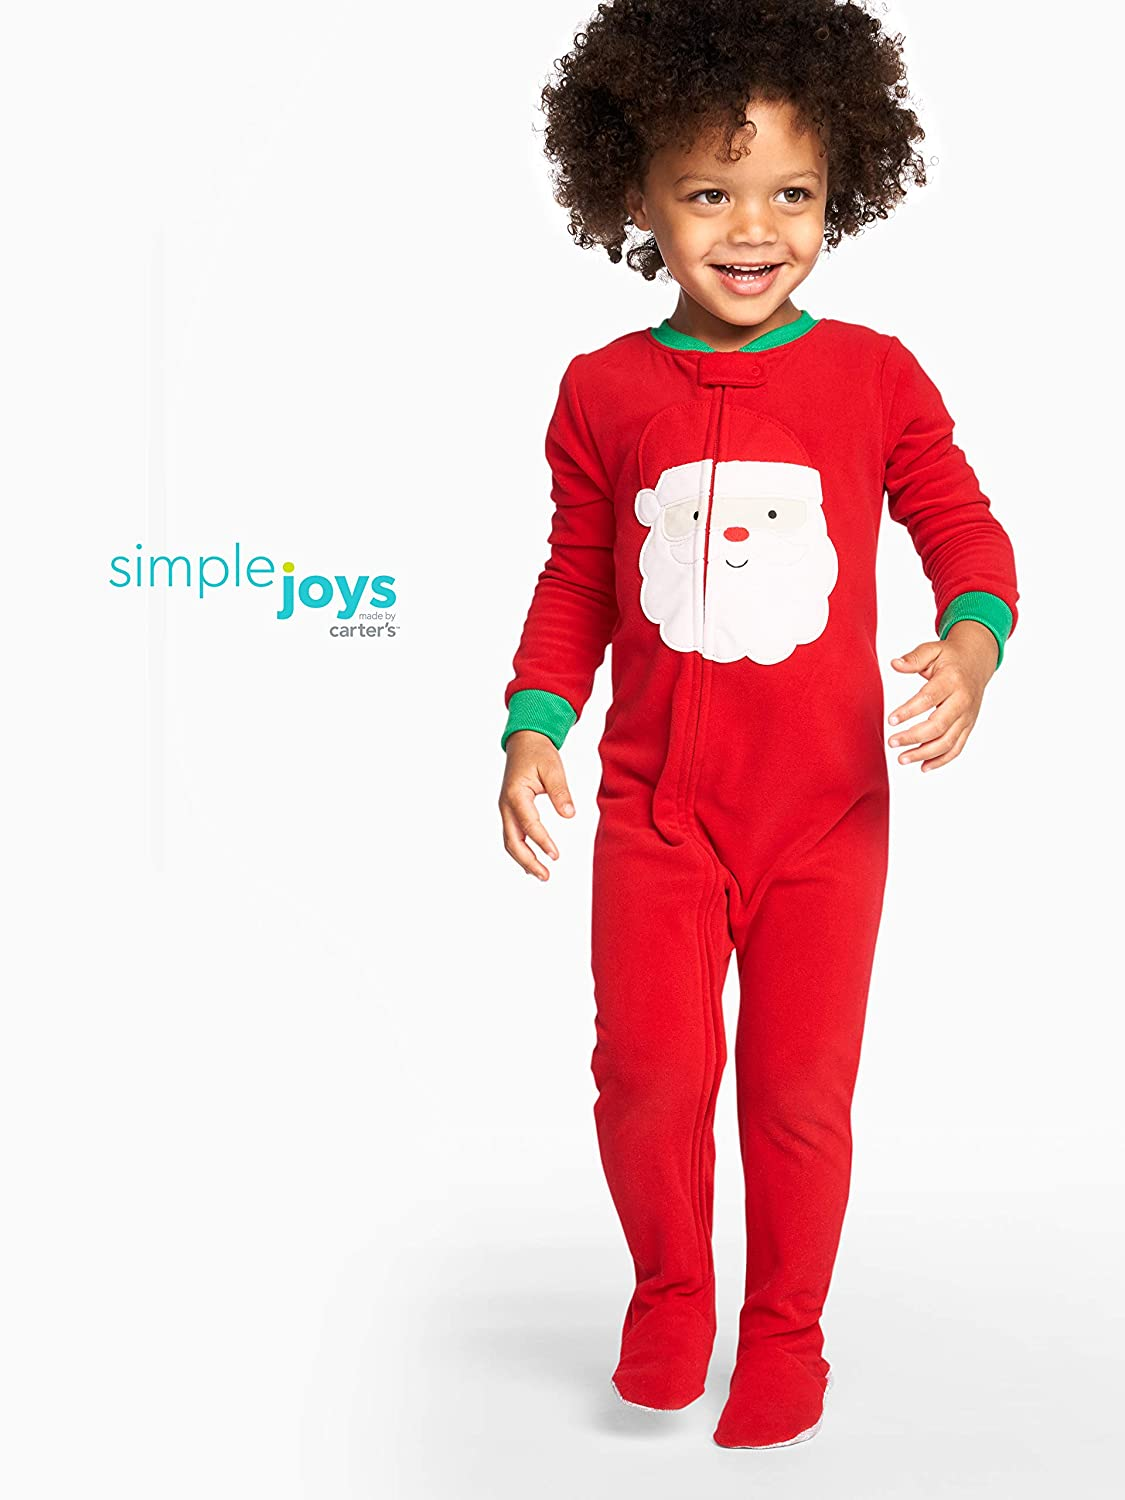 Simple Joys by Carters Baby Toddler 2-Pack Holiday Loose Fit Flame Resistant Fleece Footed Pajamas 2T Ivory Red Santa